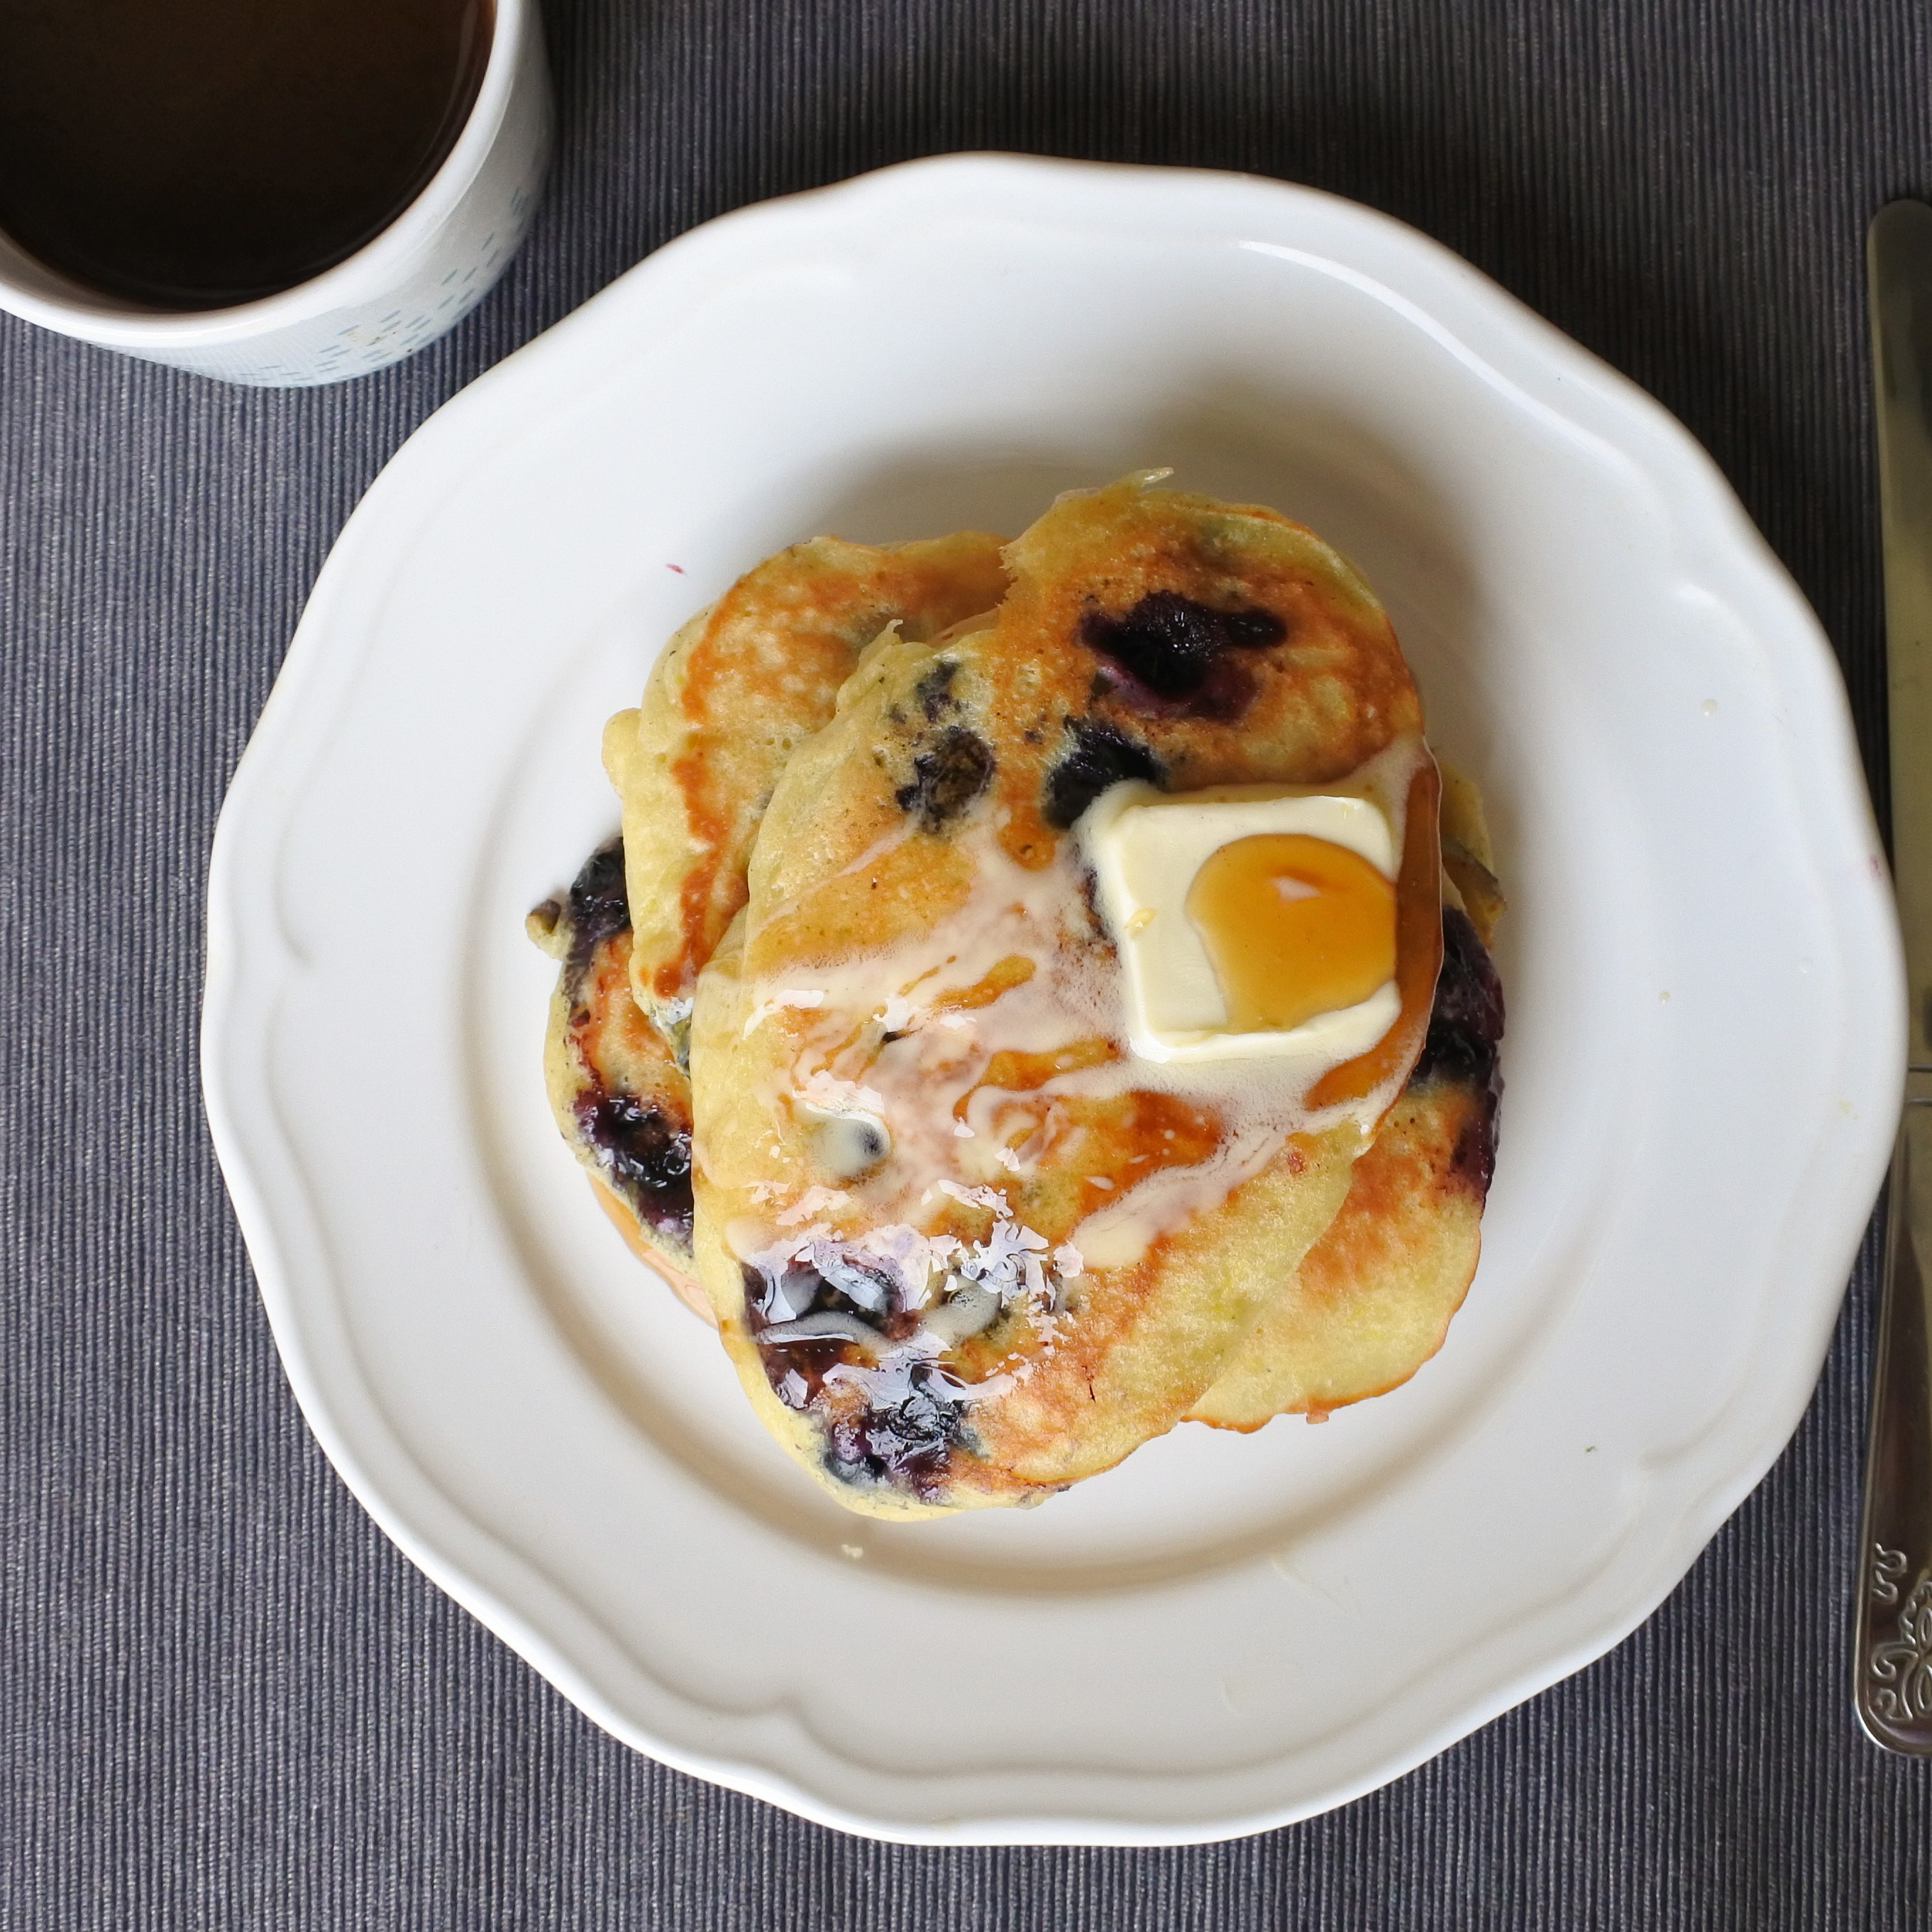 Blueberry, Lemon and Ginger Pancakes